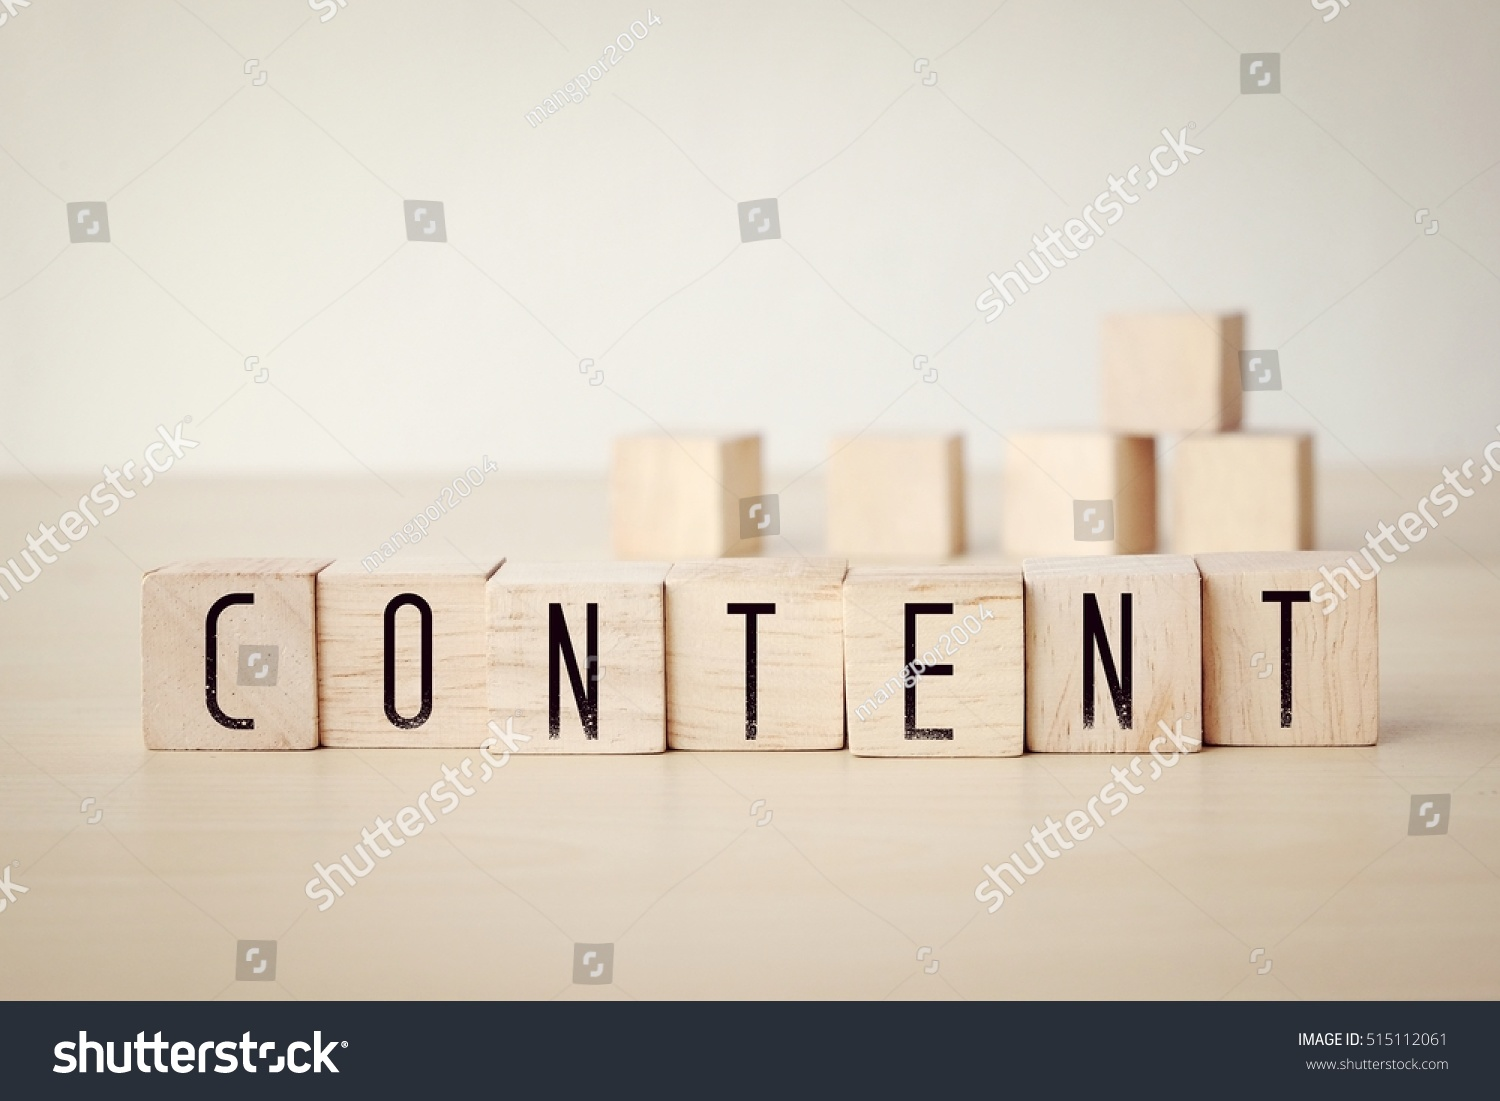 Content word on wooden cubes background, digital marketing concept #515112061